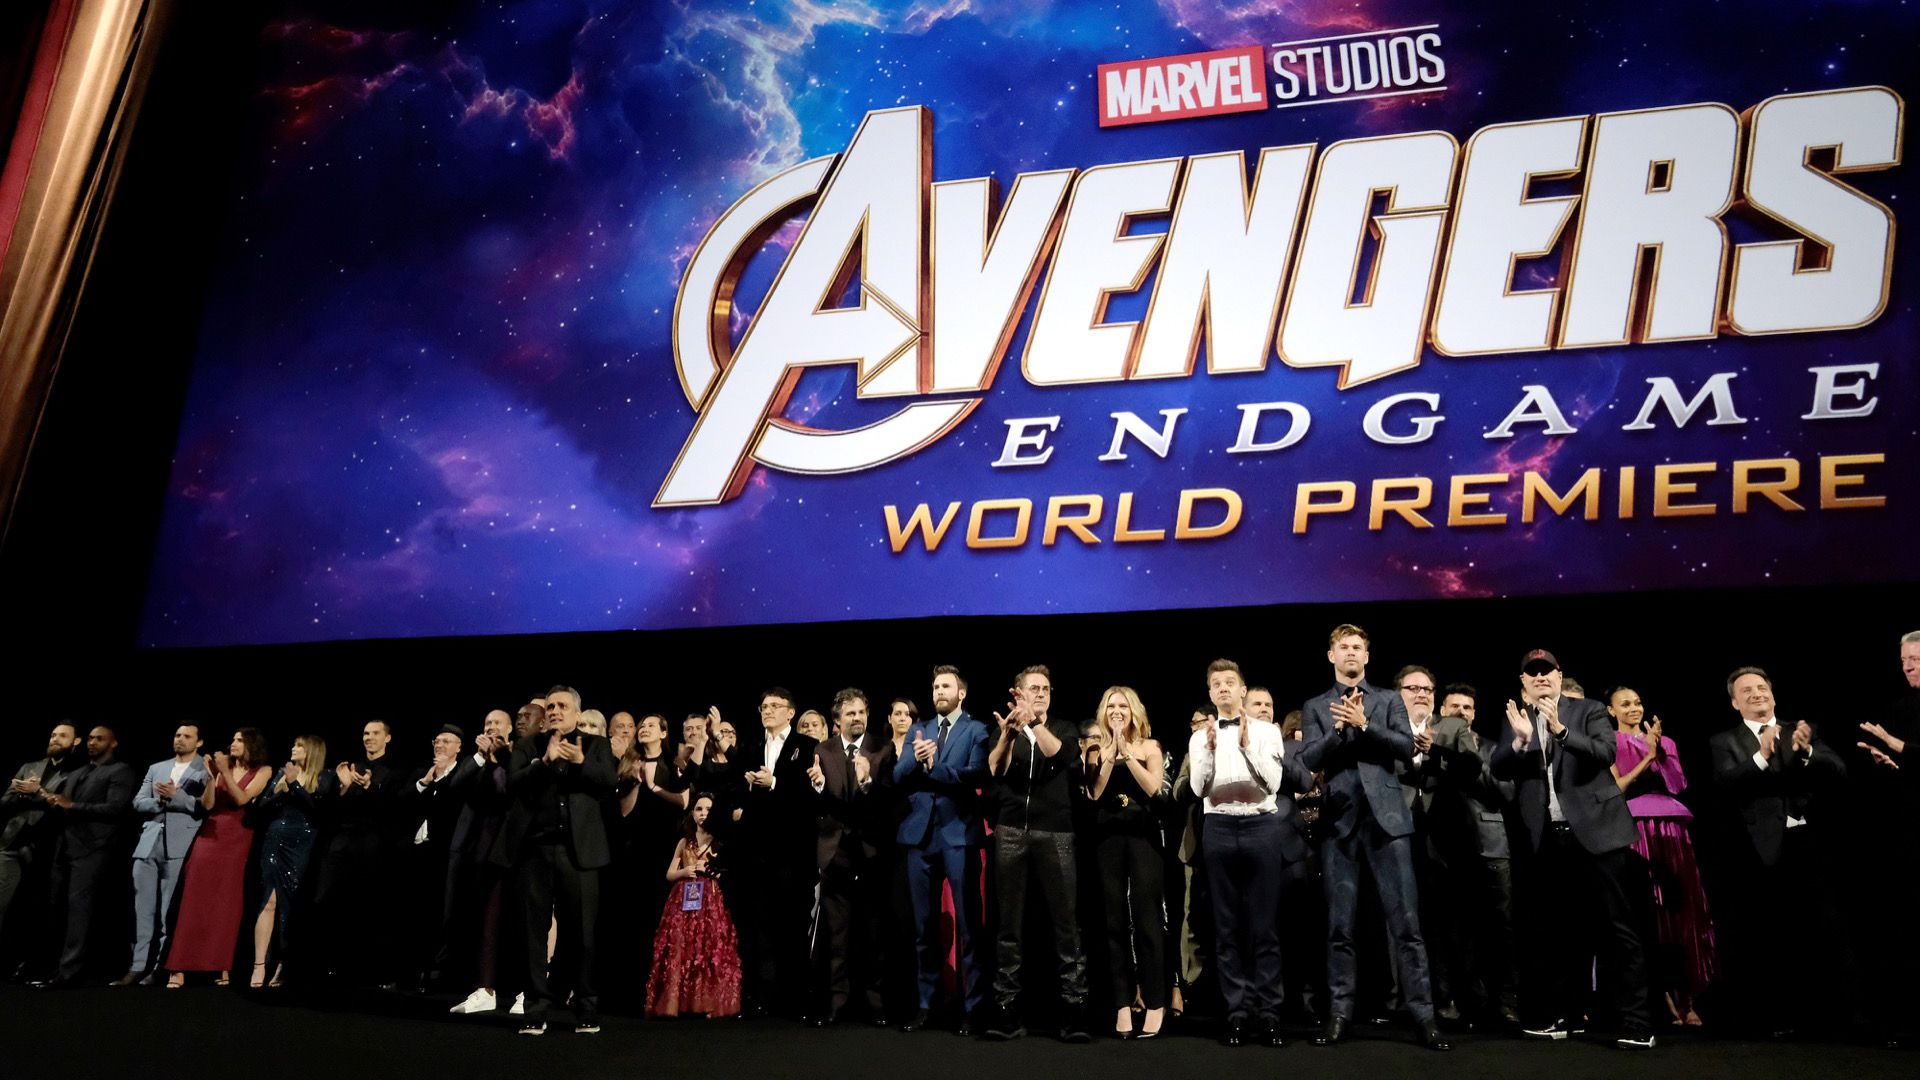 """Avengers: Endgame"" is set to smash box office records around the globe"